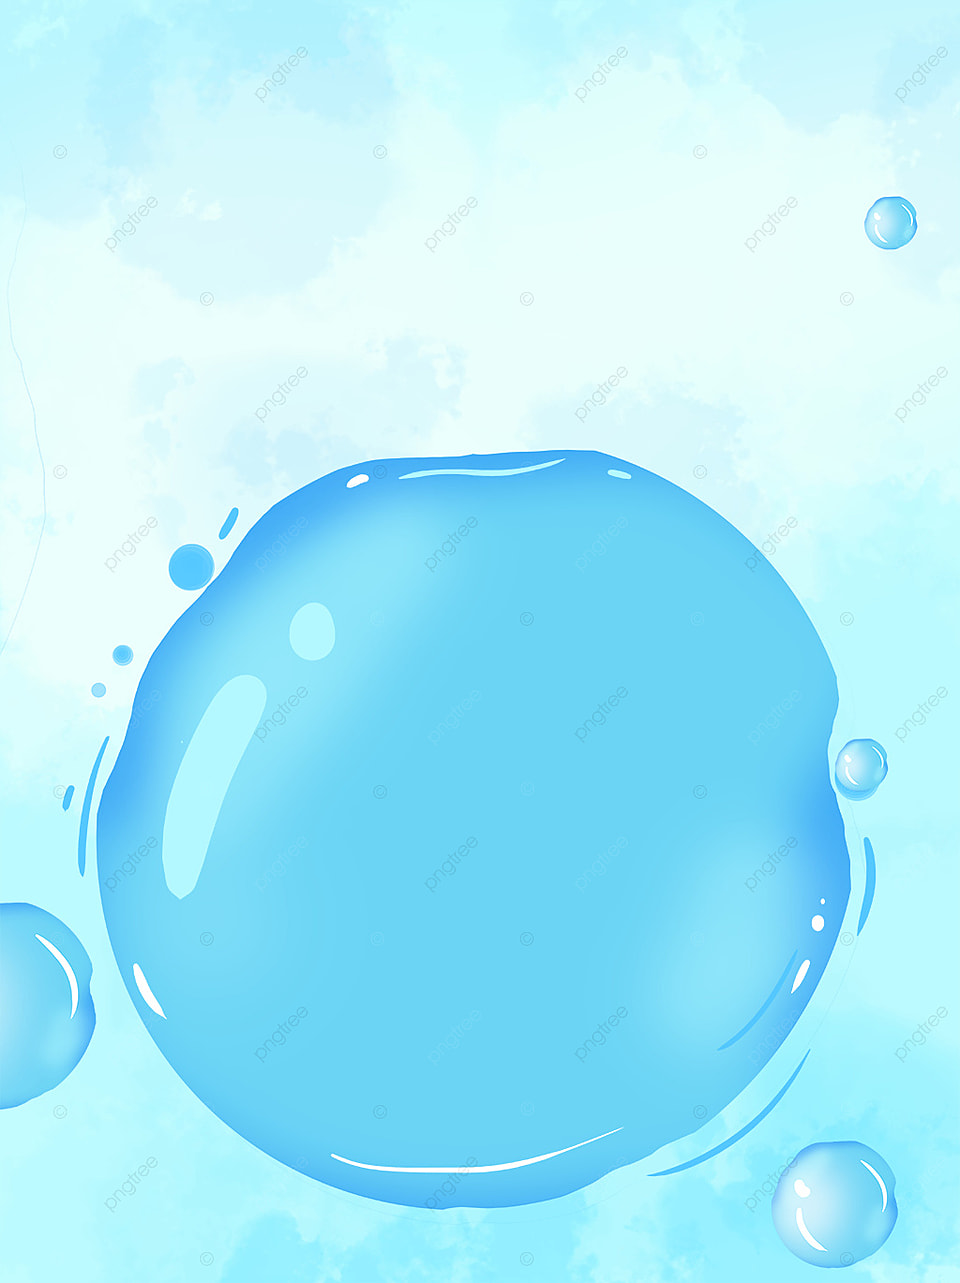 Background Biru Muda Png : background, Fresh, Beauty, Bubble, Background,, Background, Material,, Board,, Colorful, Image, Download